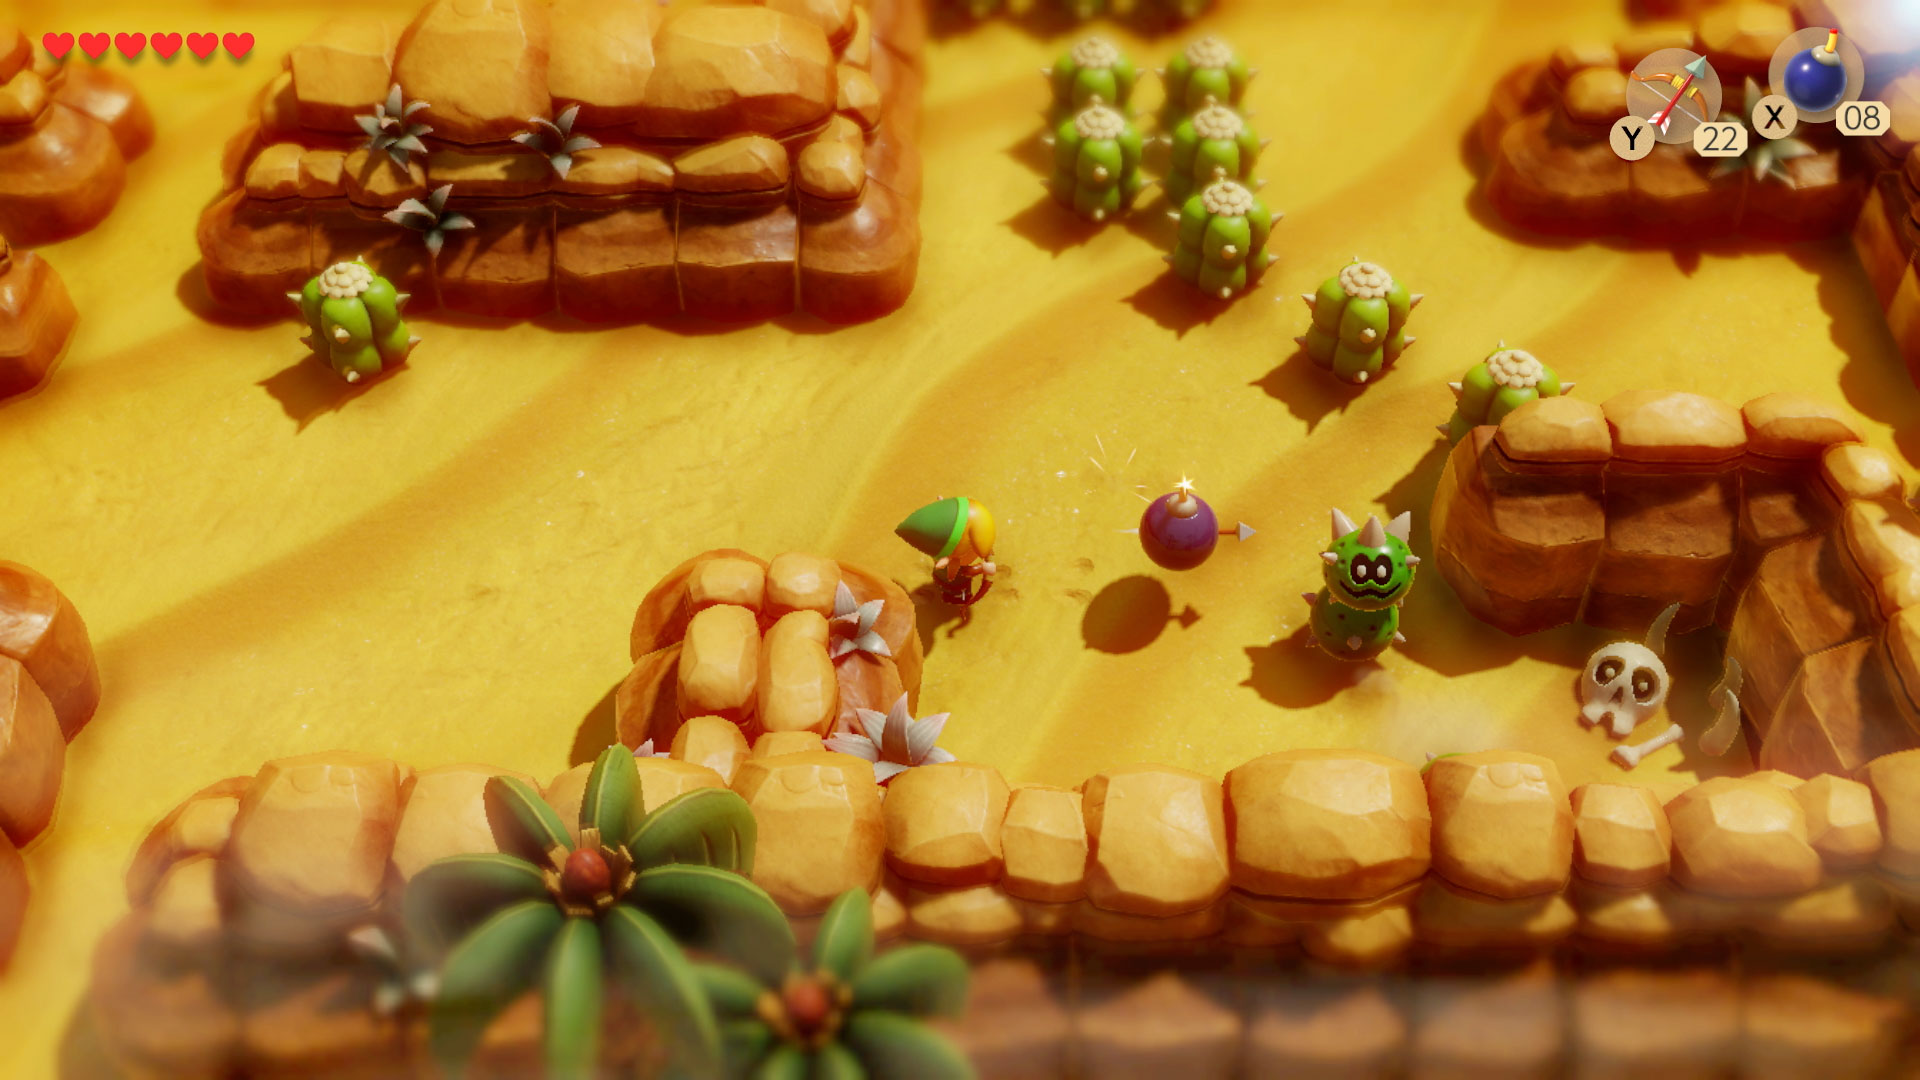 SwitchArcade Round-Up: 'The Legend of Zelda: Link's Awakening', 'Ni no Kuni', 'Untitled Goose Game', and Today's Other New Releases and Sales